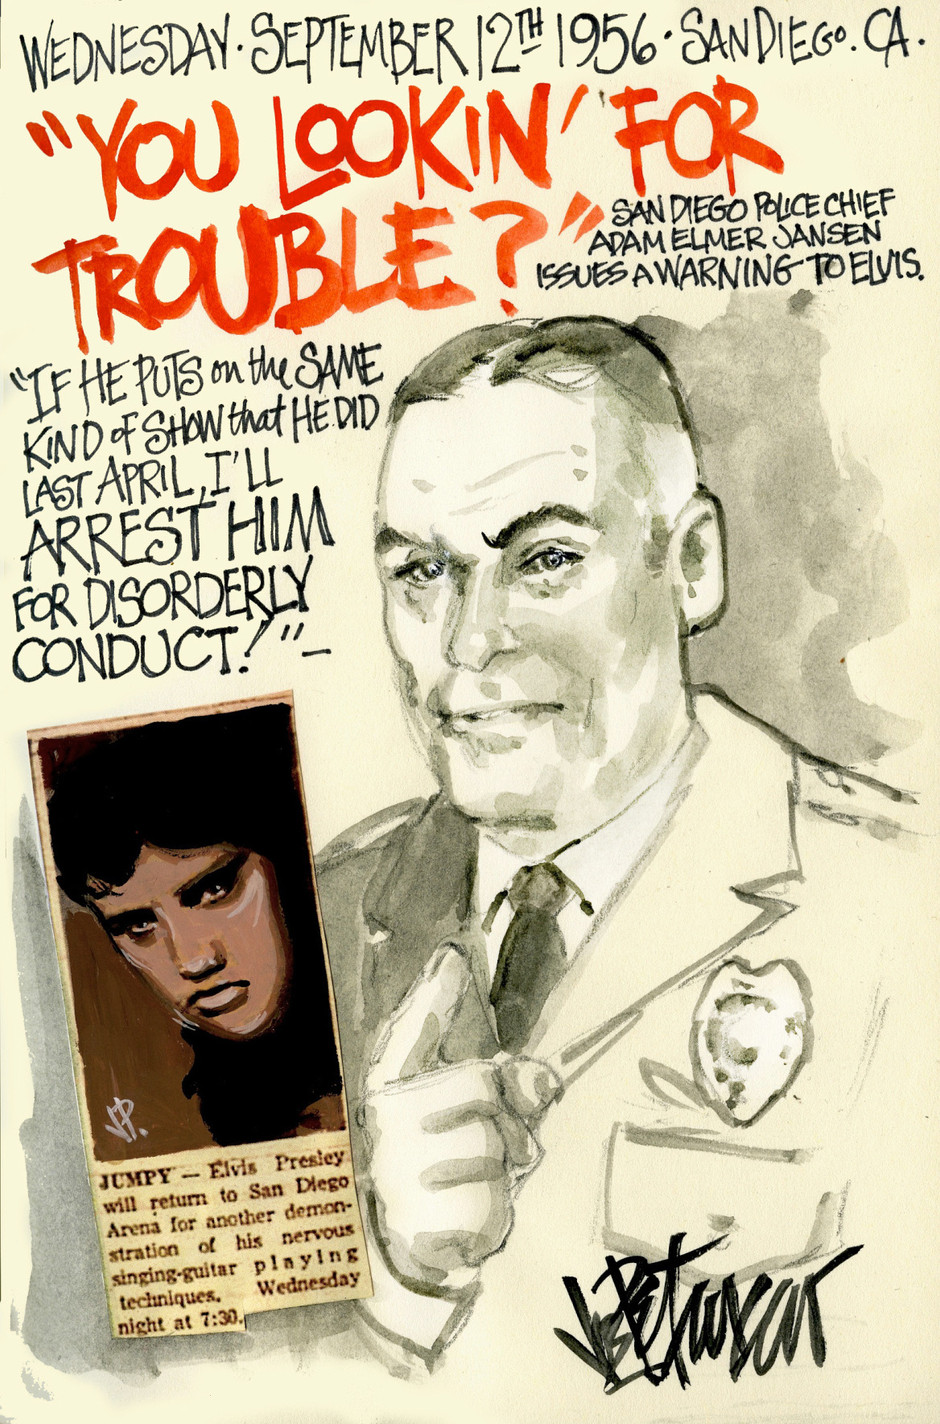 THIS DAY IN ELVIS HISTORY... YOU LOOKIN' FOR TROUBLE?